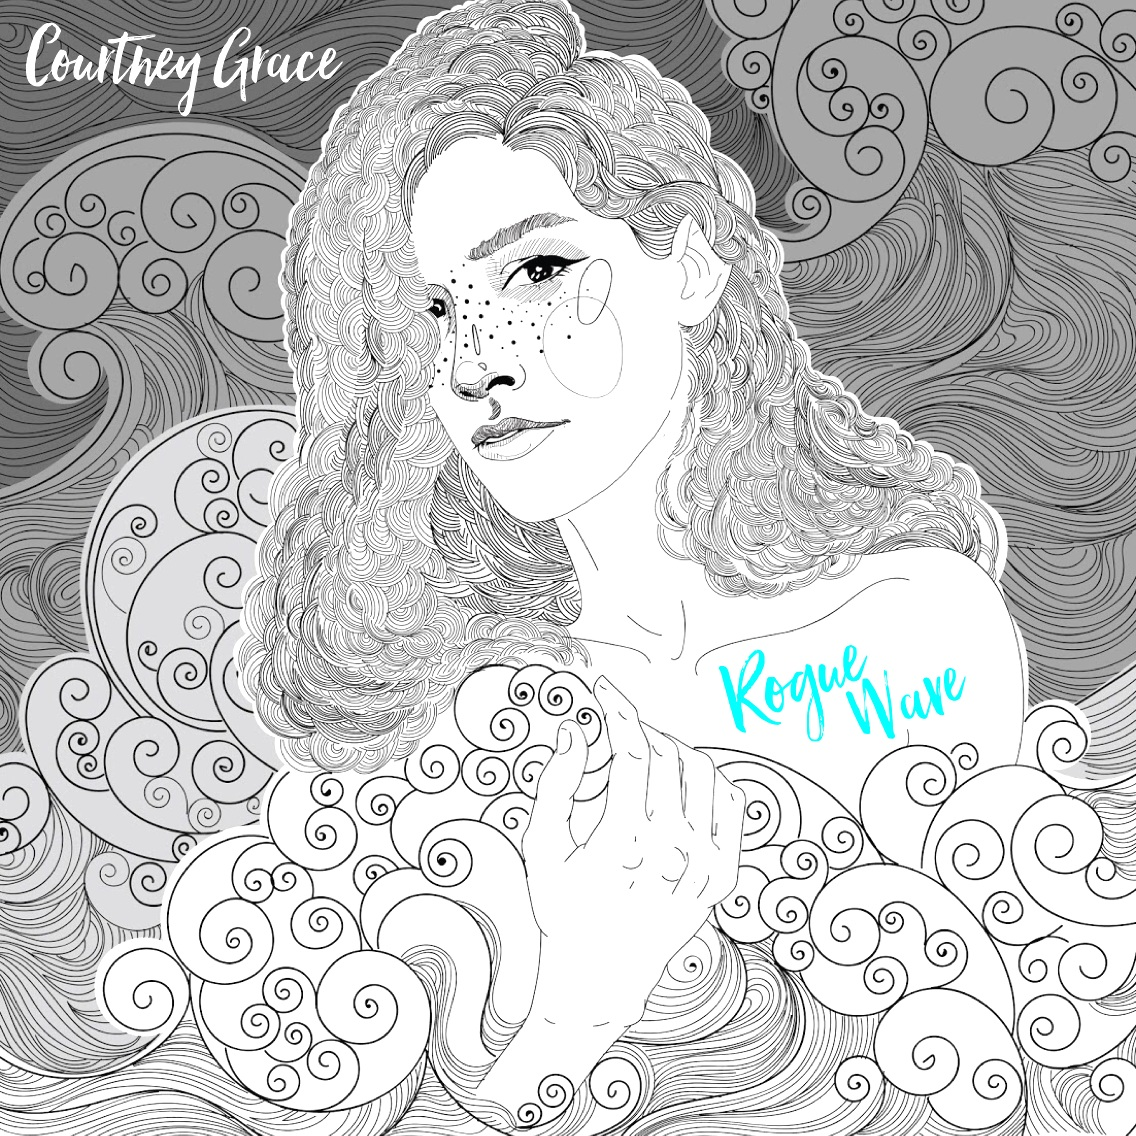 Rogue Wave EP - Courtney Grace